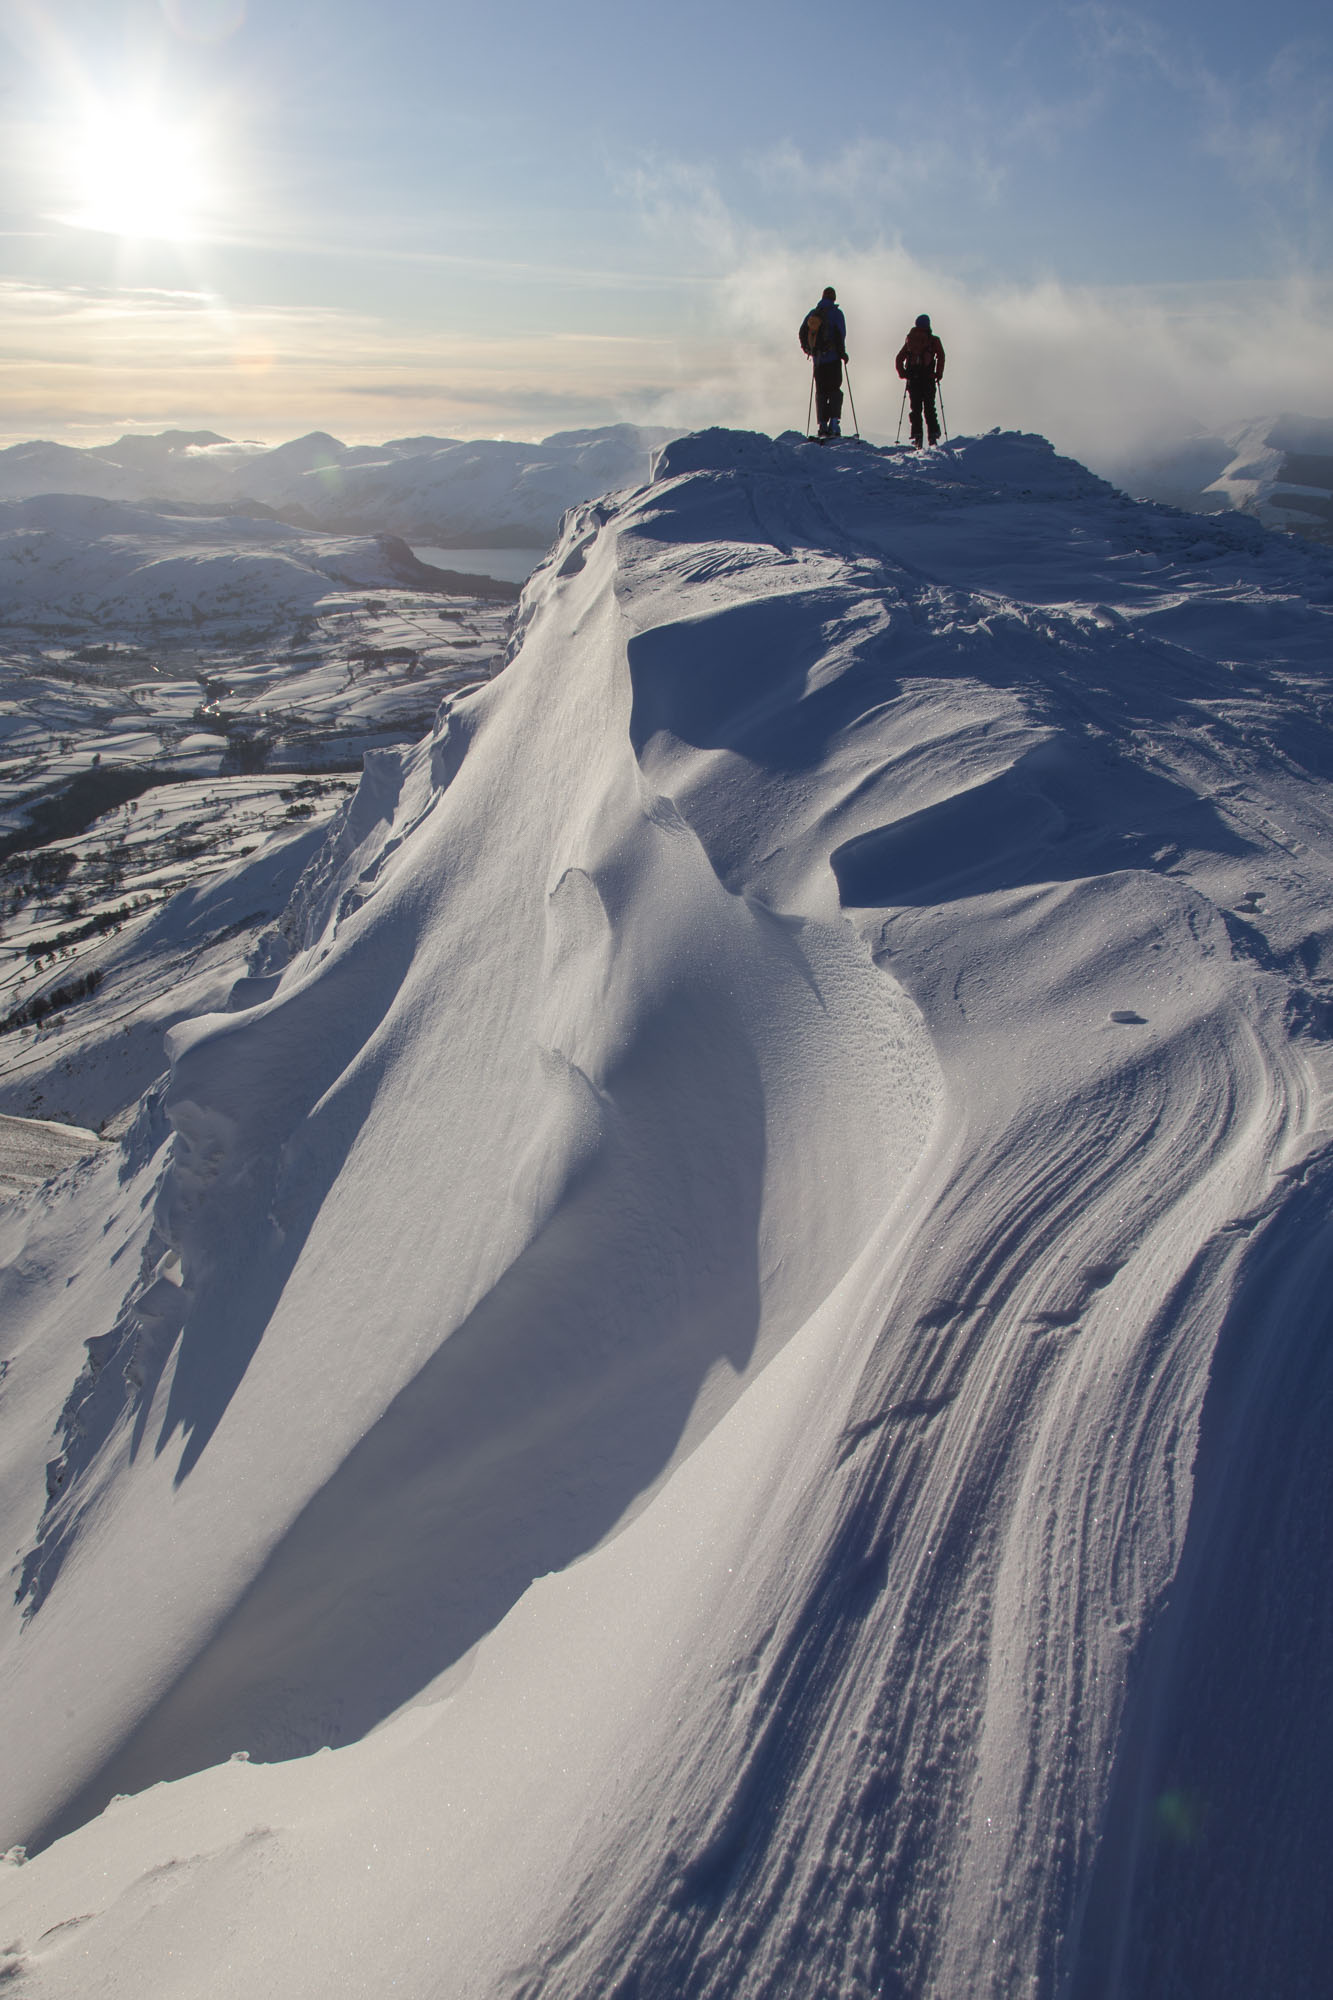 Wind sculpted snow is called sastrugi. Skiers taking in the view on top of Blencathra. Canon 5D MkII, 24-105mm at 24mm, ISO 100, 1/320 sec at f/13, December. © Stuart Holmes.